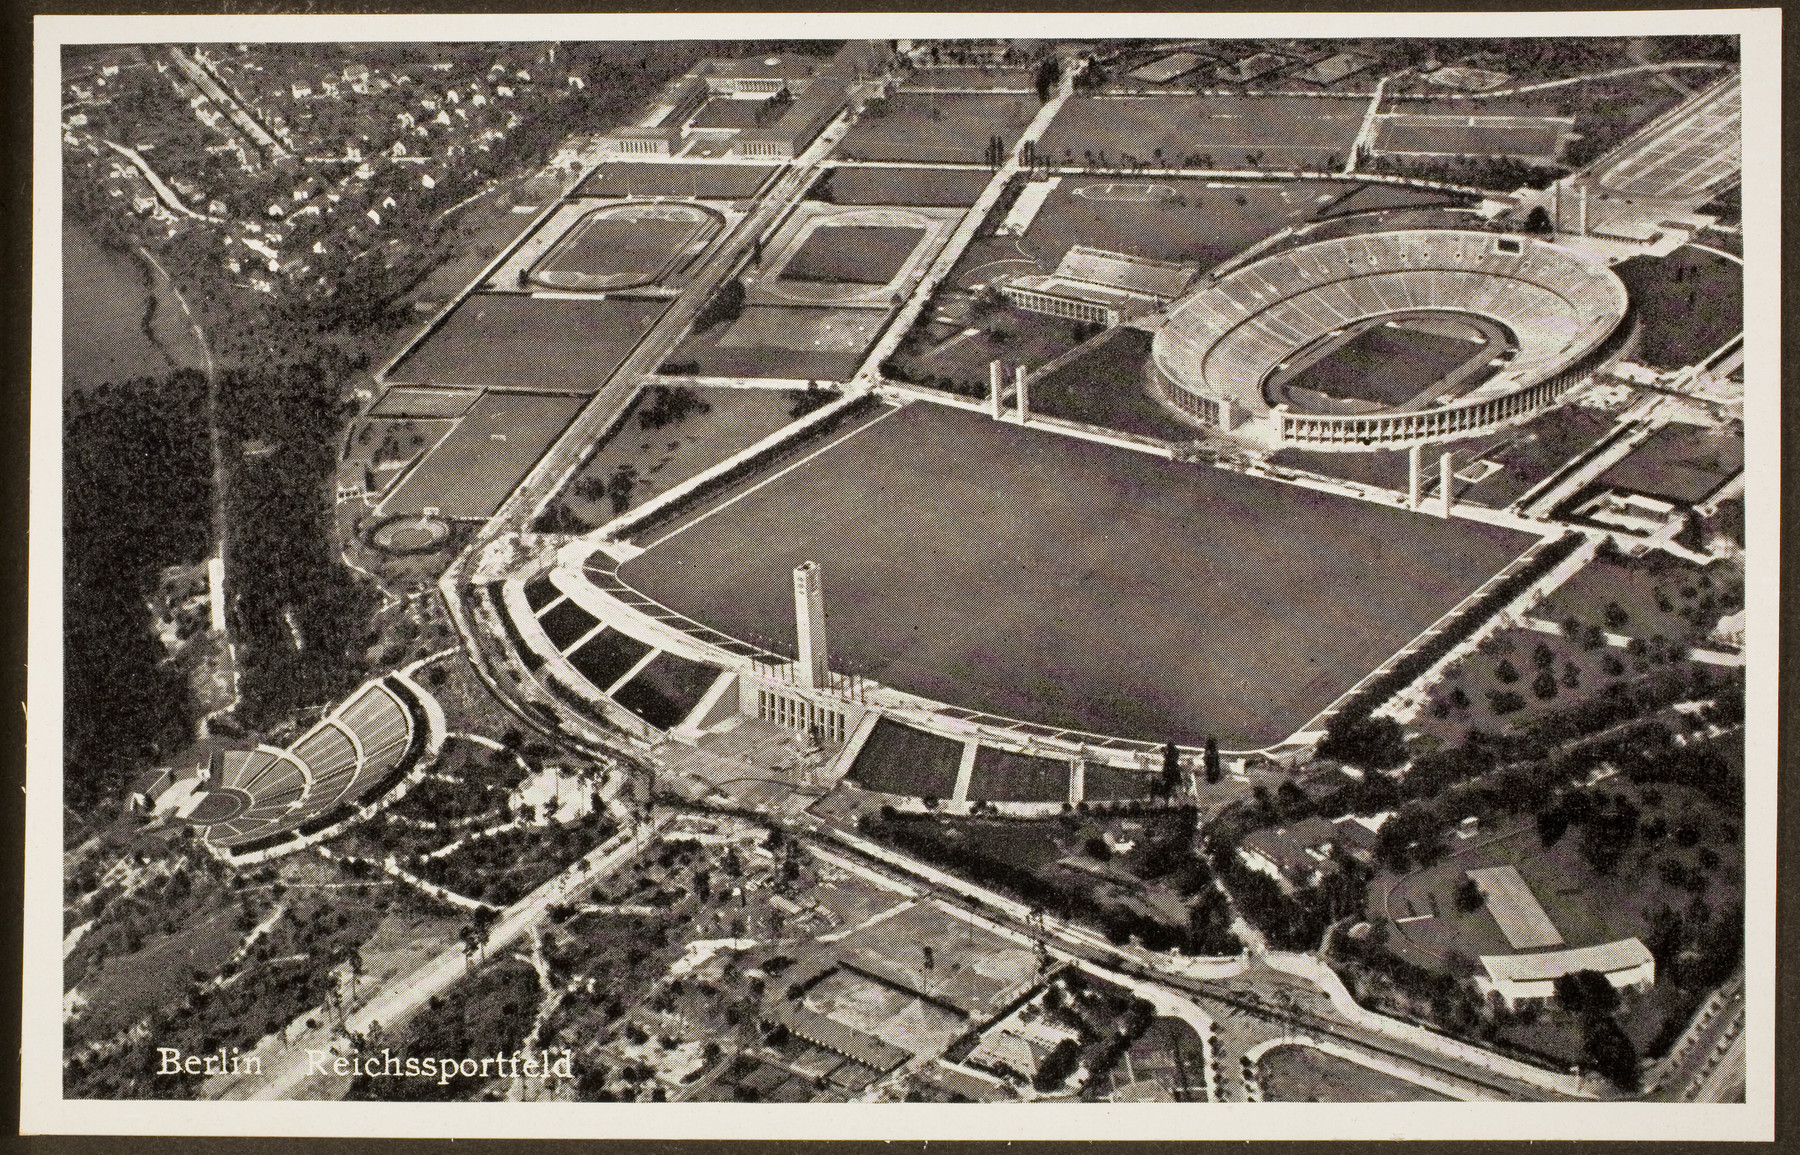 Aerial photograph of the Olympic grounds of the Berlin Olympics in 1936, including the Olympic Stadium and the Berlin Reichsportfield.